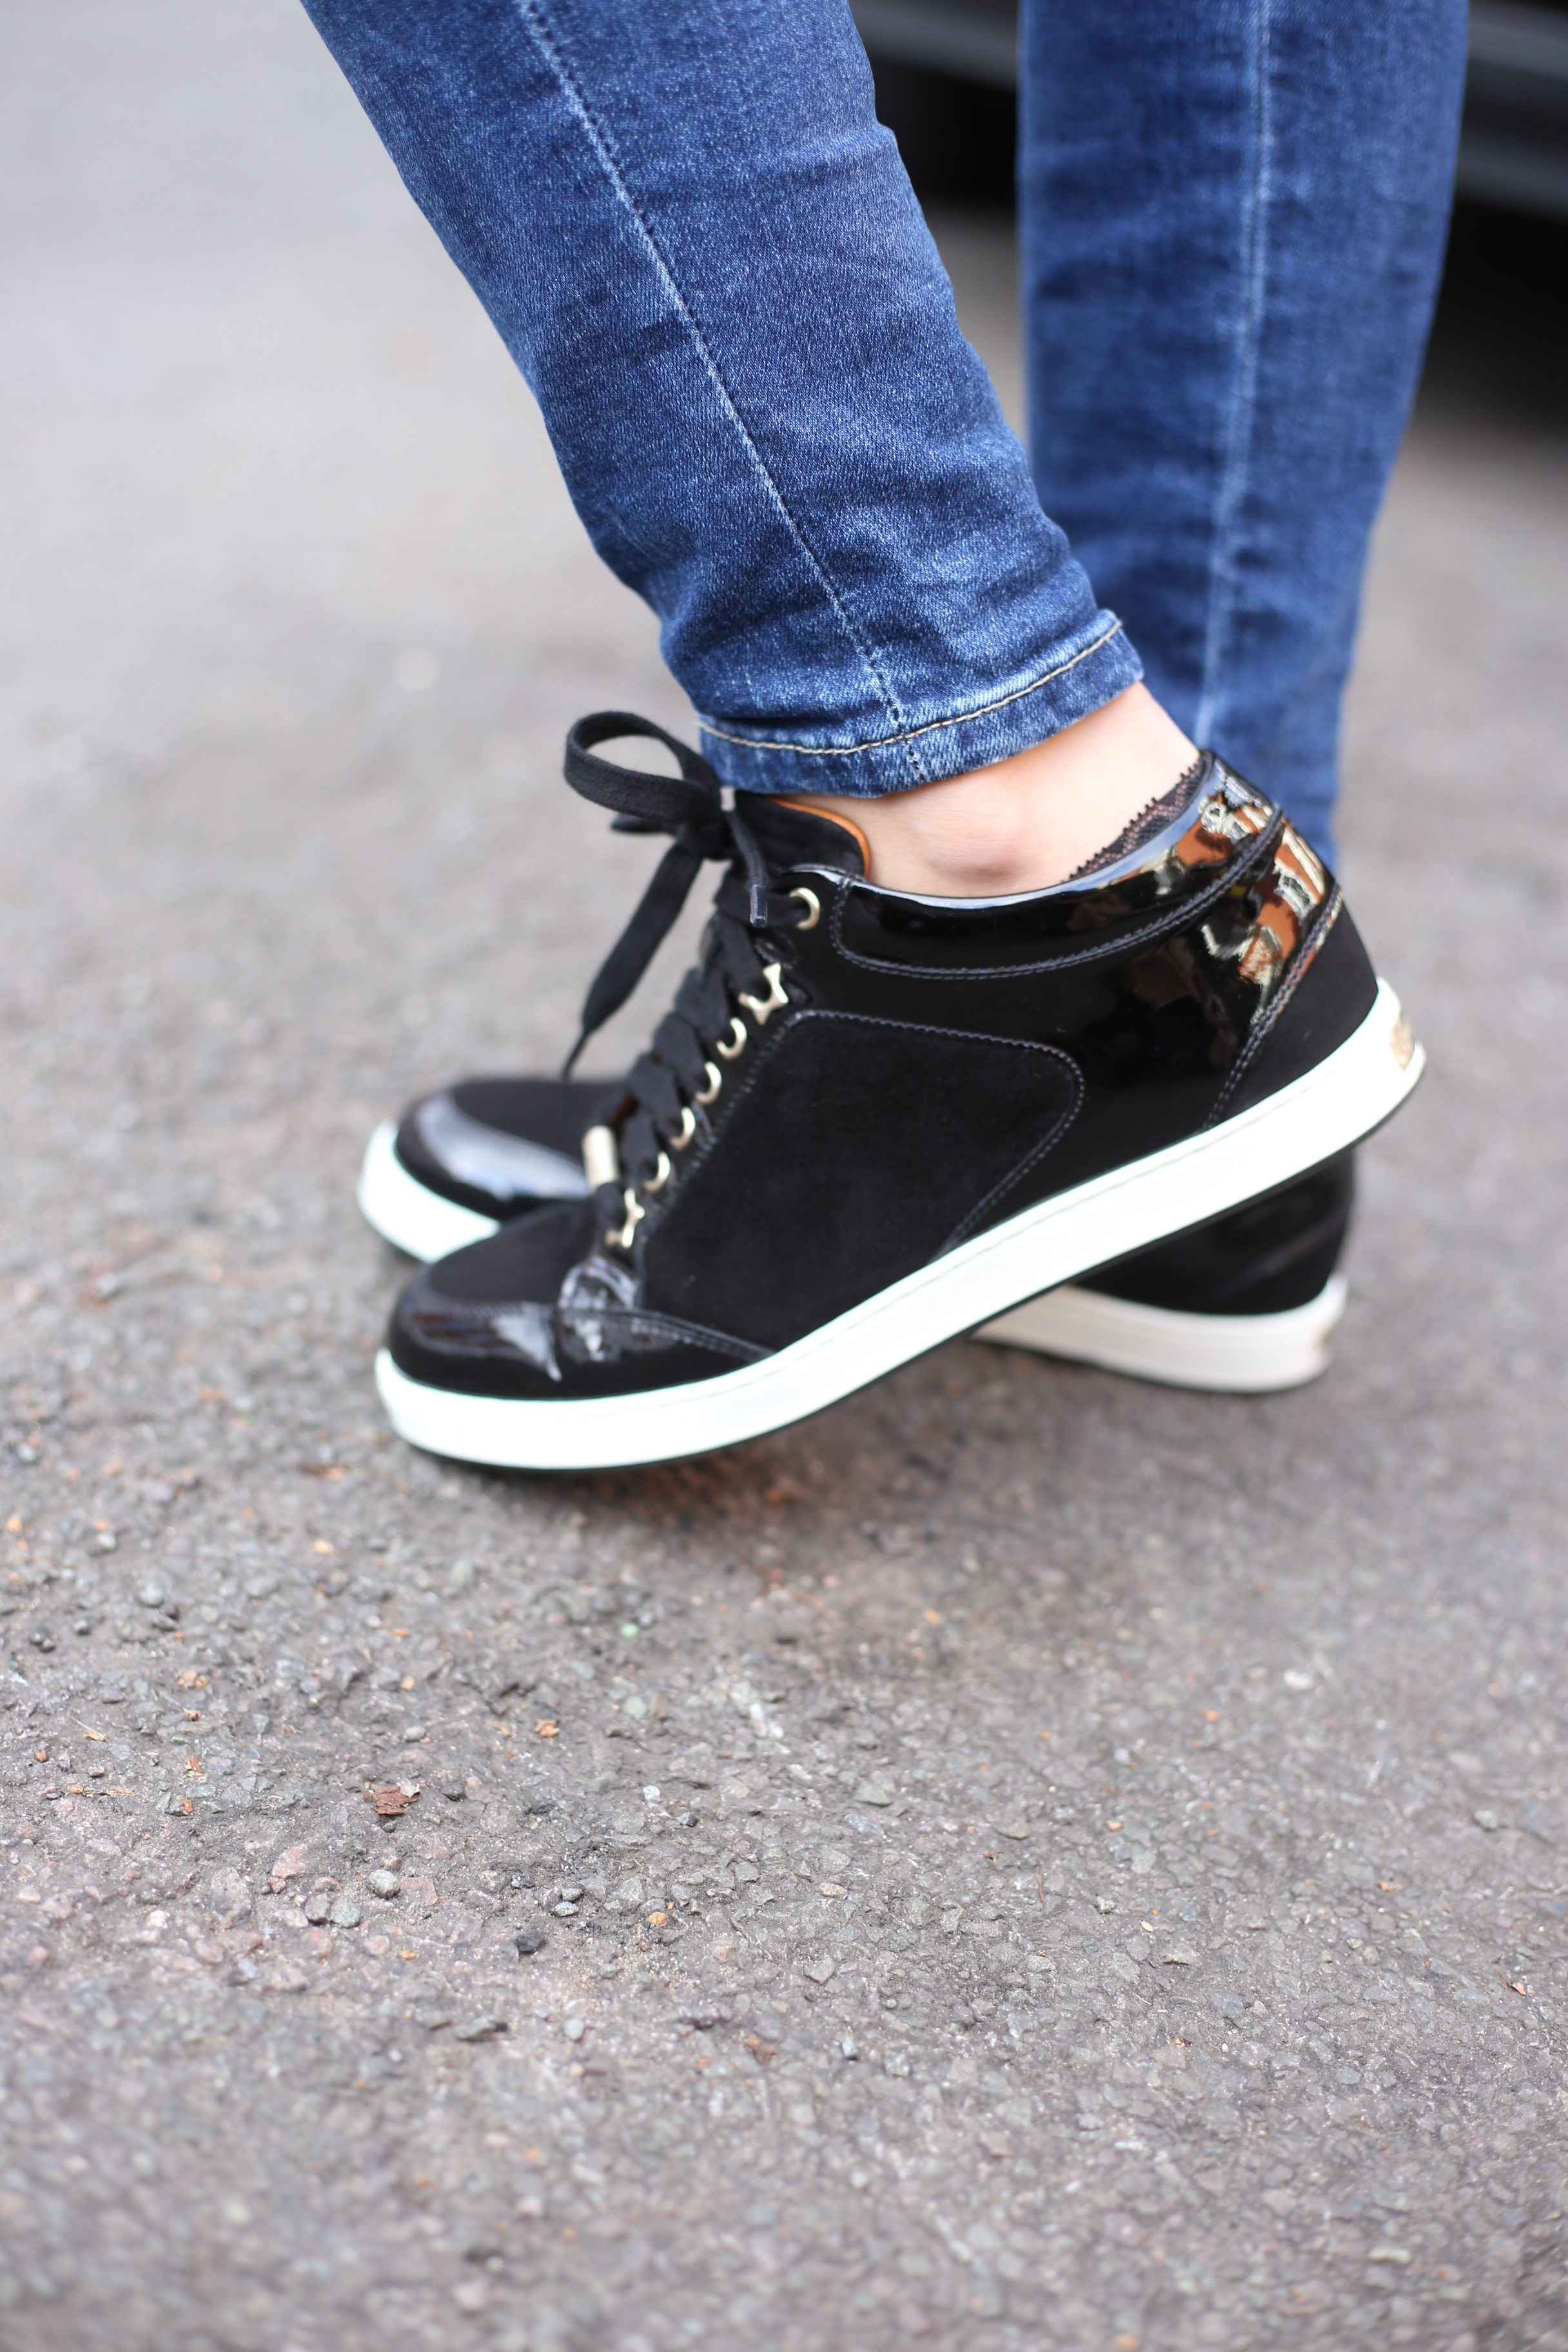 Jimmy Choo Miami Trainers | Styling and